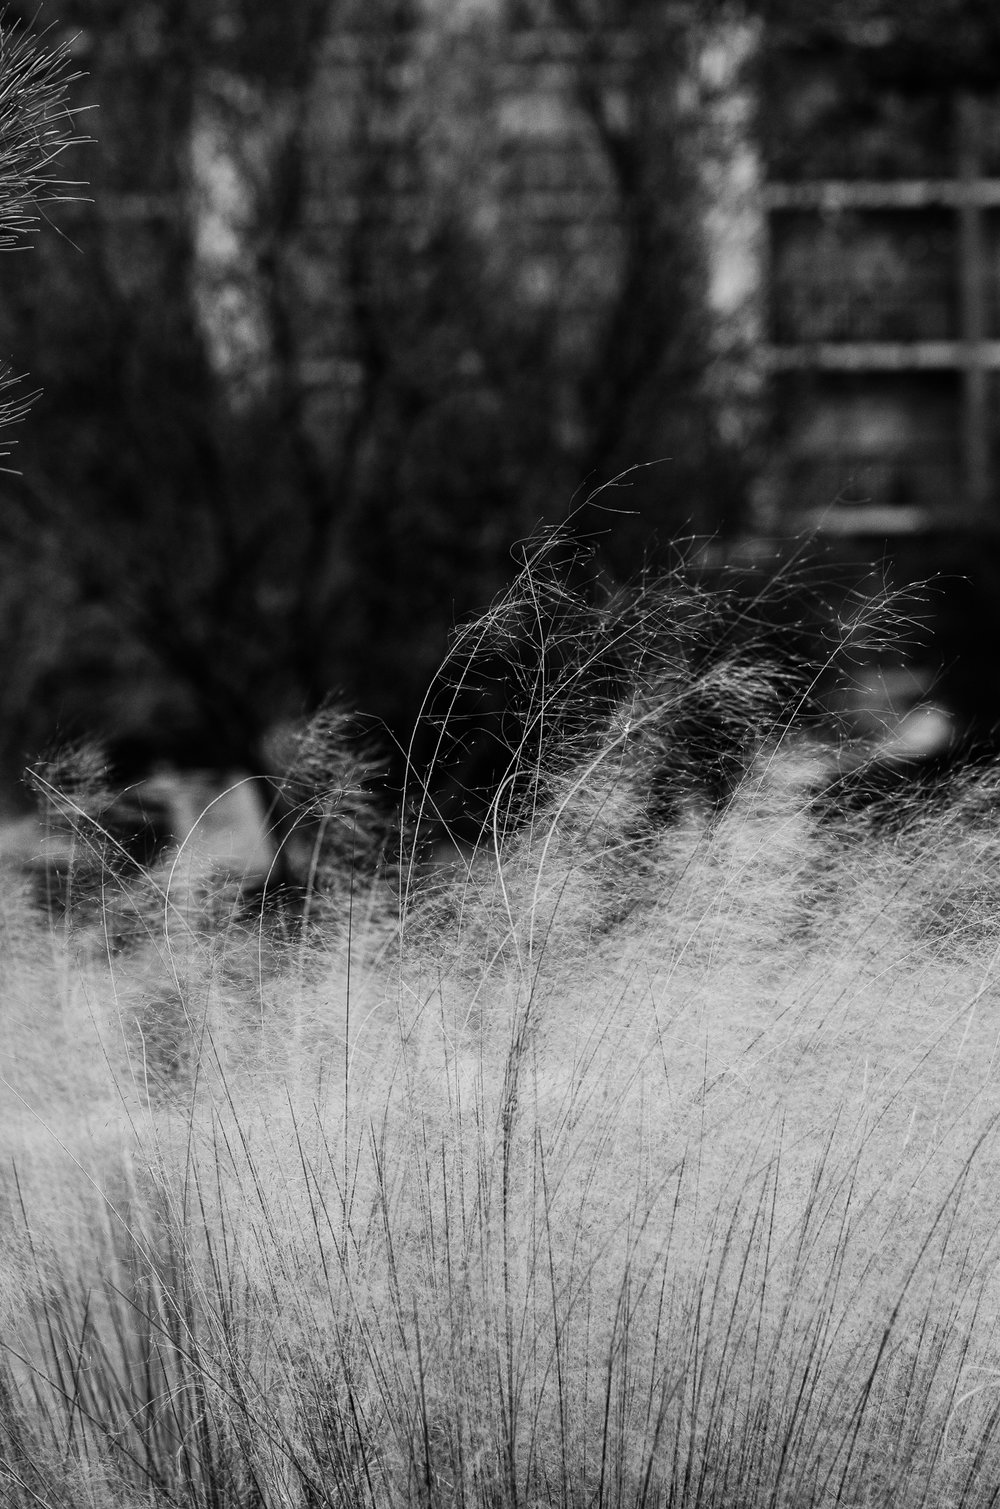 Grass in the wind, San Antonio